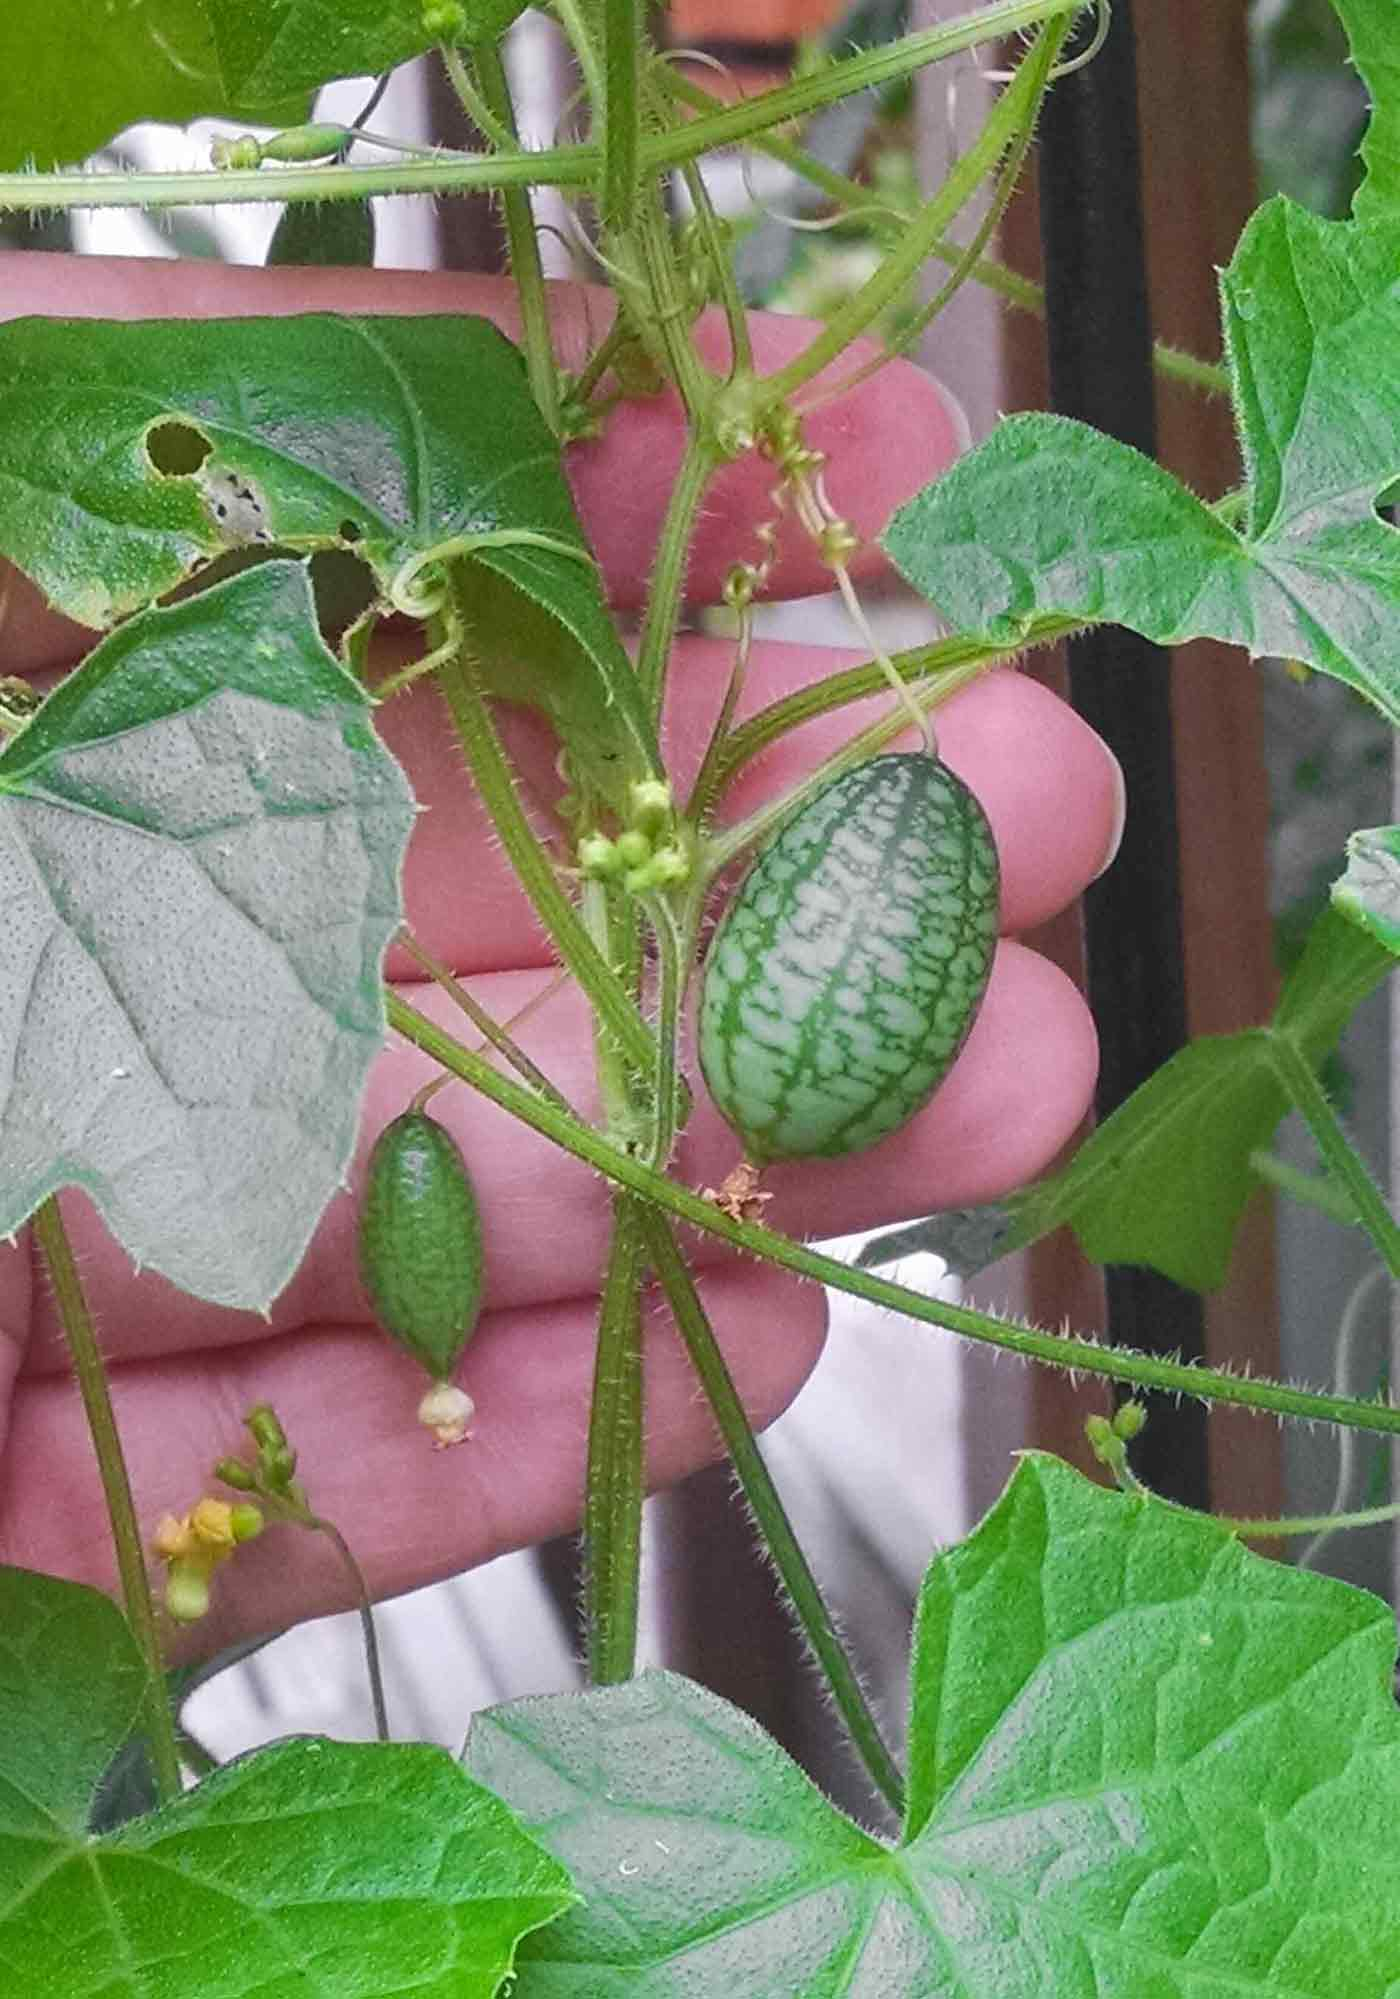 Cucumelons on the vine